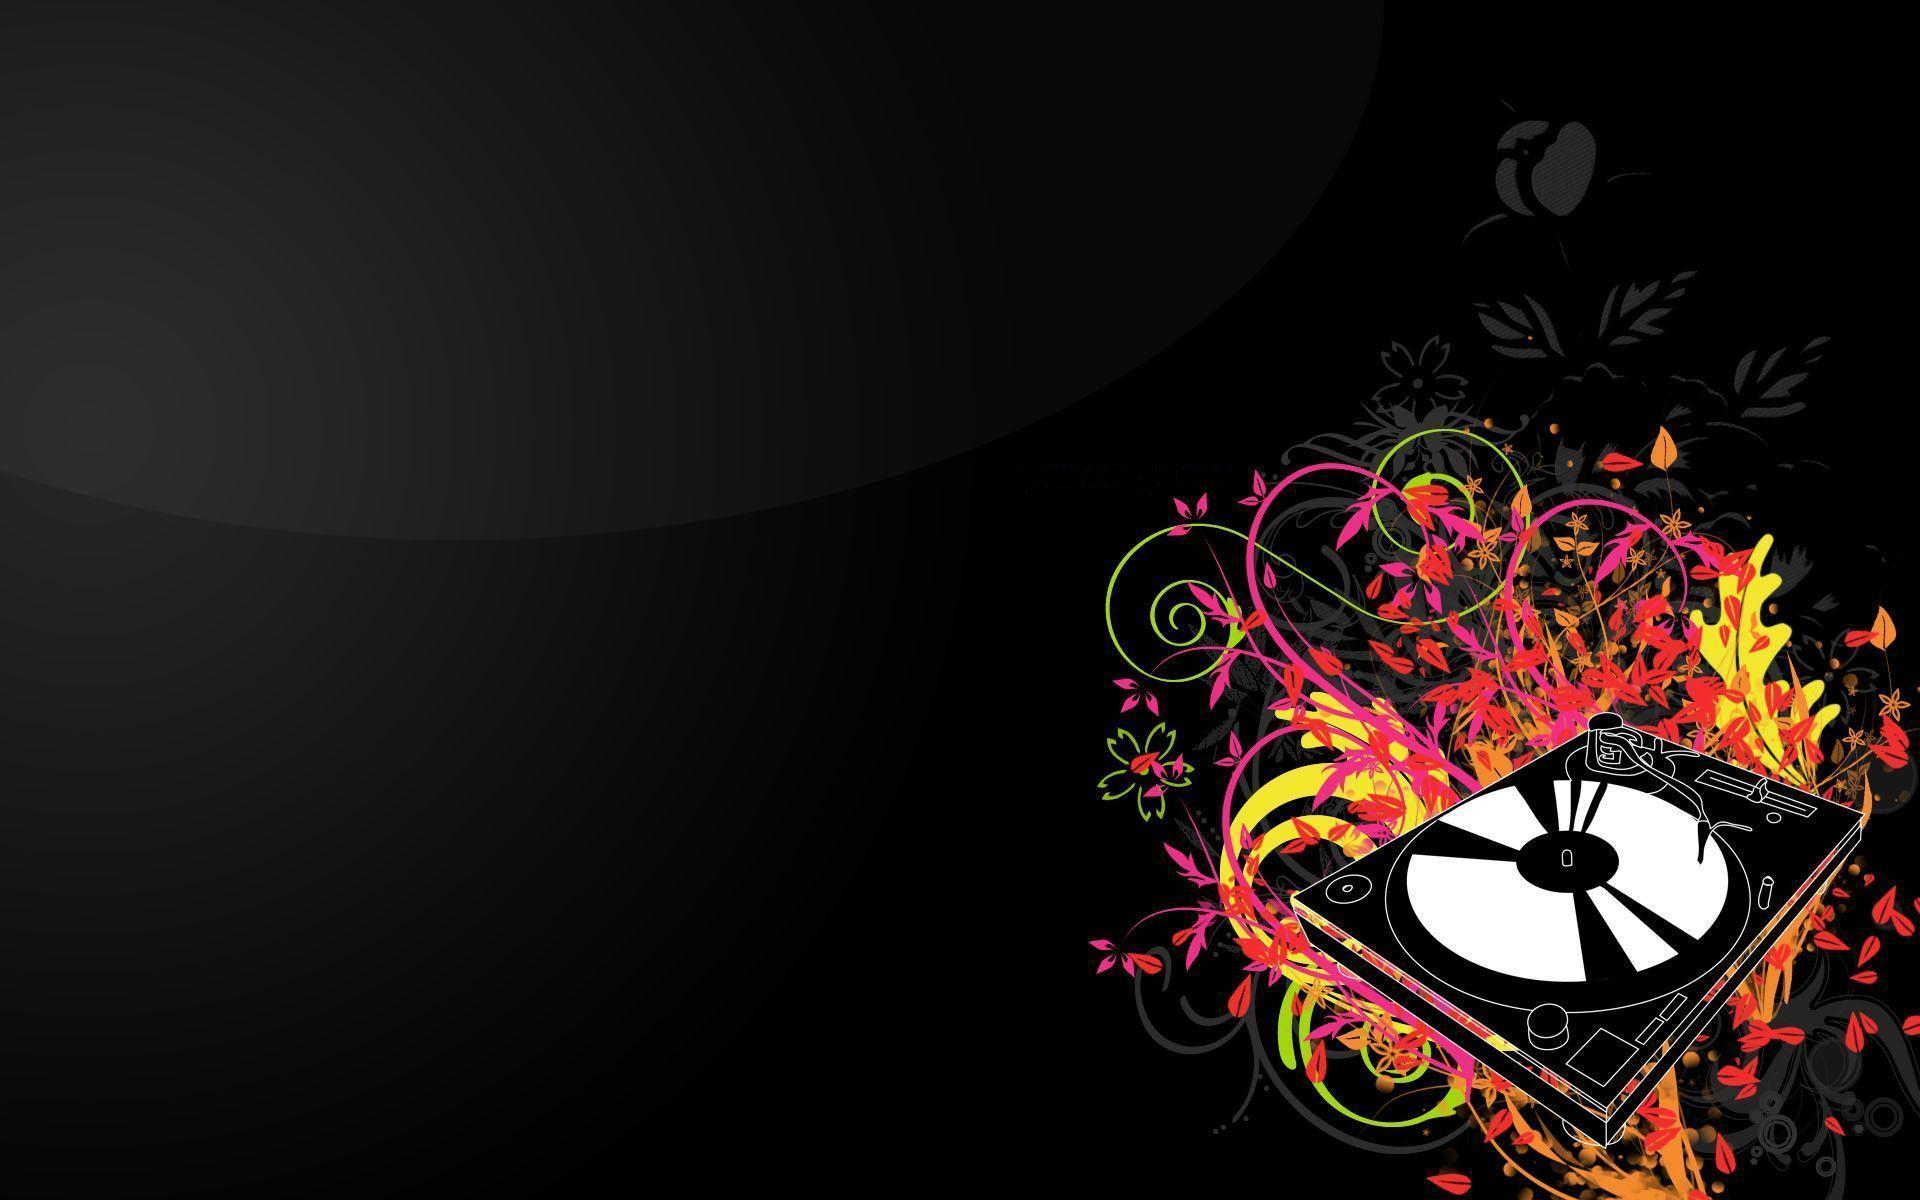 Abstract DJ Wallpapers, Abstract DJ Myspace Backgrounds, Abstract ...